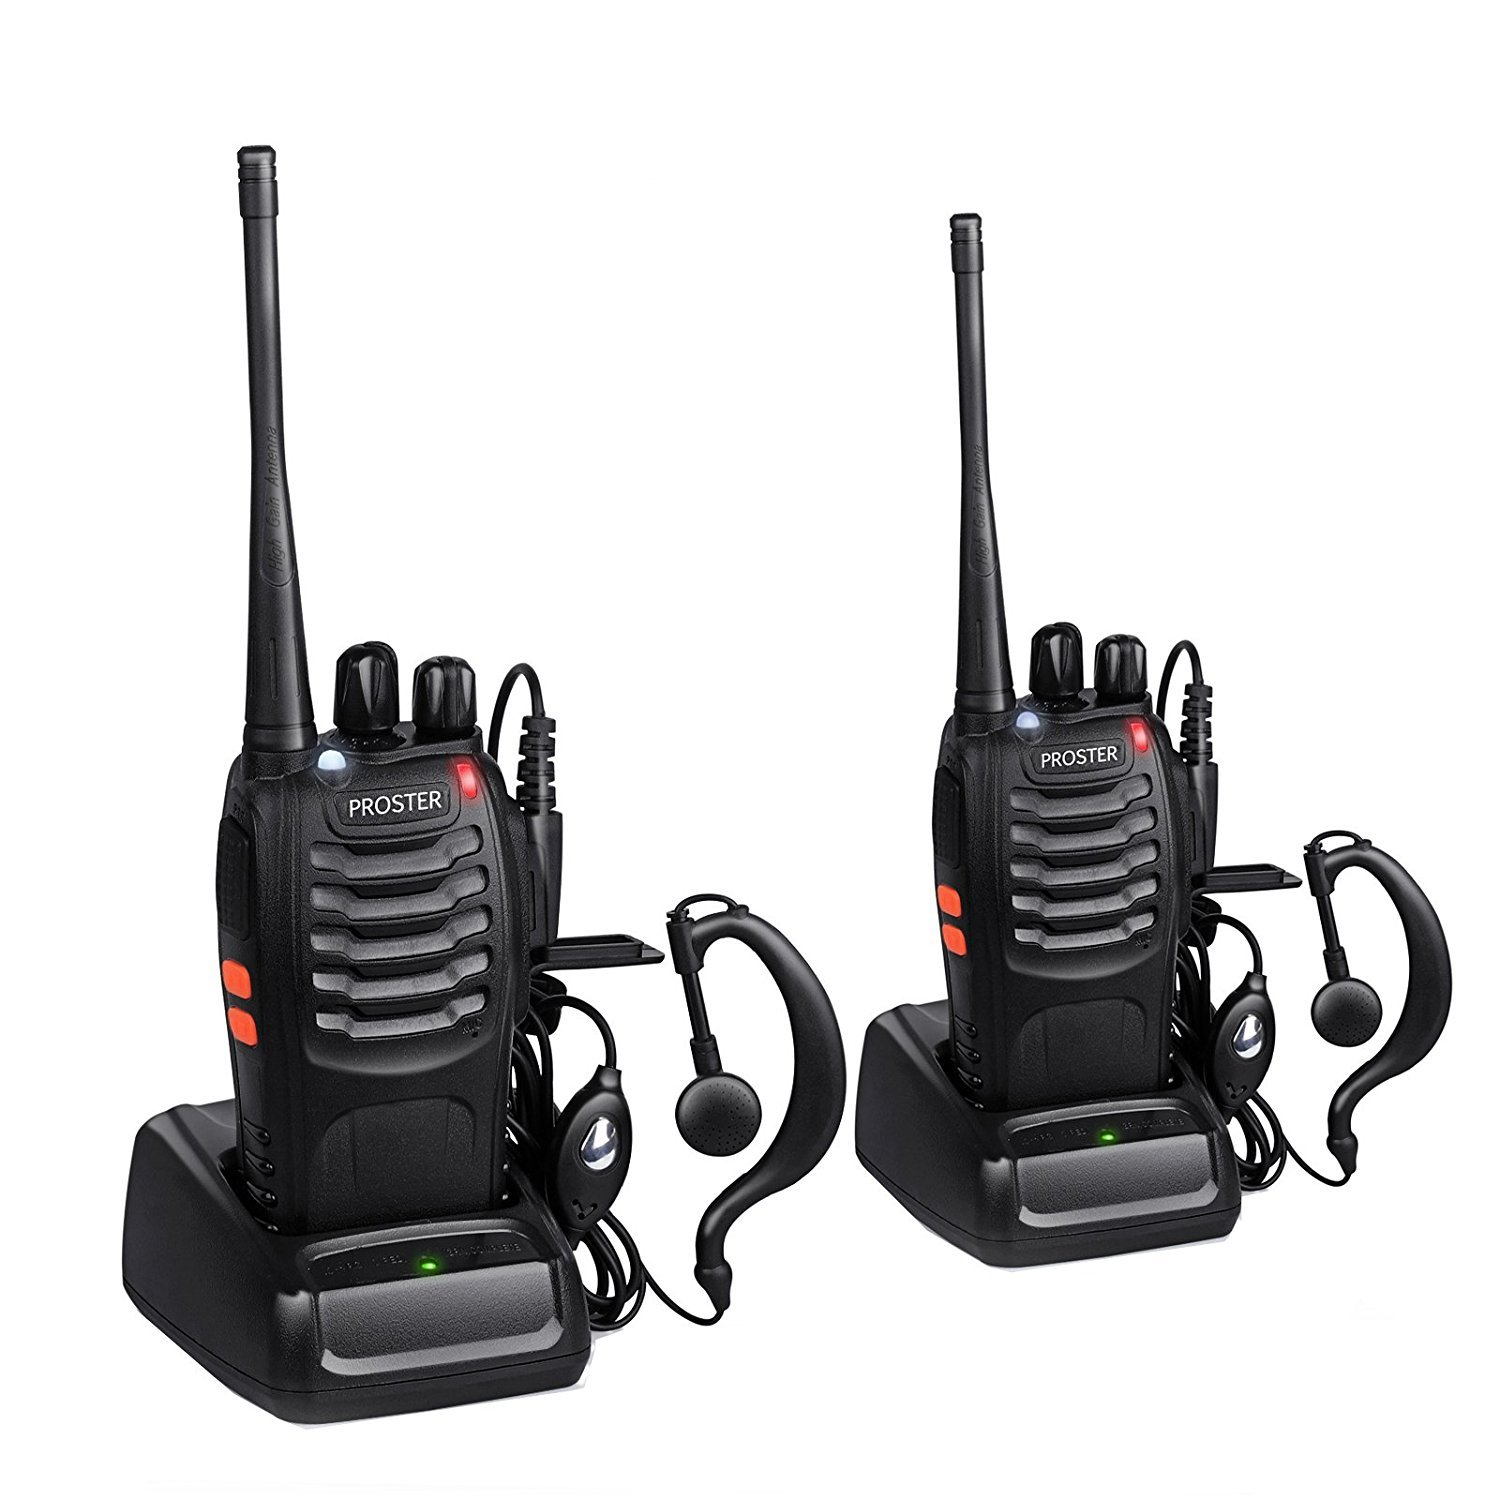 Proster Walkie Talkies Two Way Radio 16 Channel Rechargeable Walkie Talkie Ham Radio Tracsceiver UHF 400 to 470 MHz CTCSS DCS with Original Earpiece and USB Charger 4 Pair by Proster